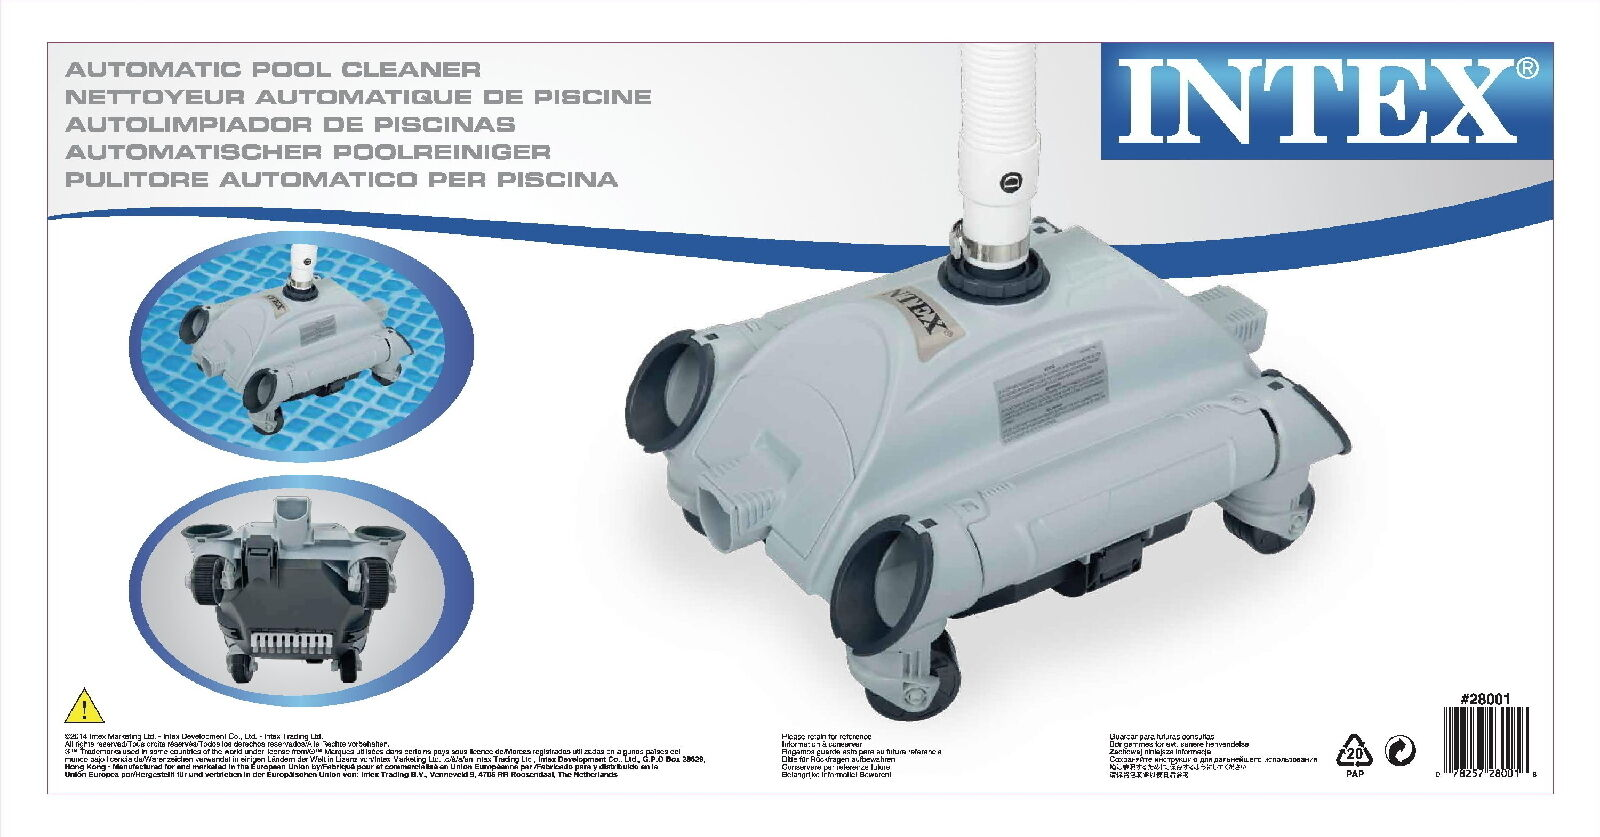 Auto pool cleaner intex 28001 per piscina robottino for Robot piscine intex 28001